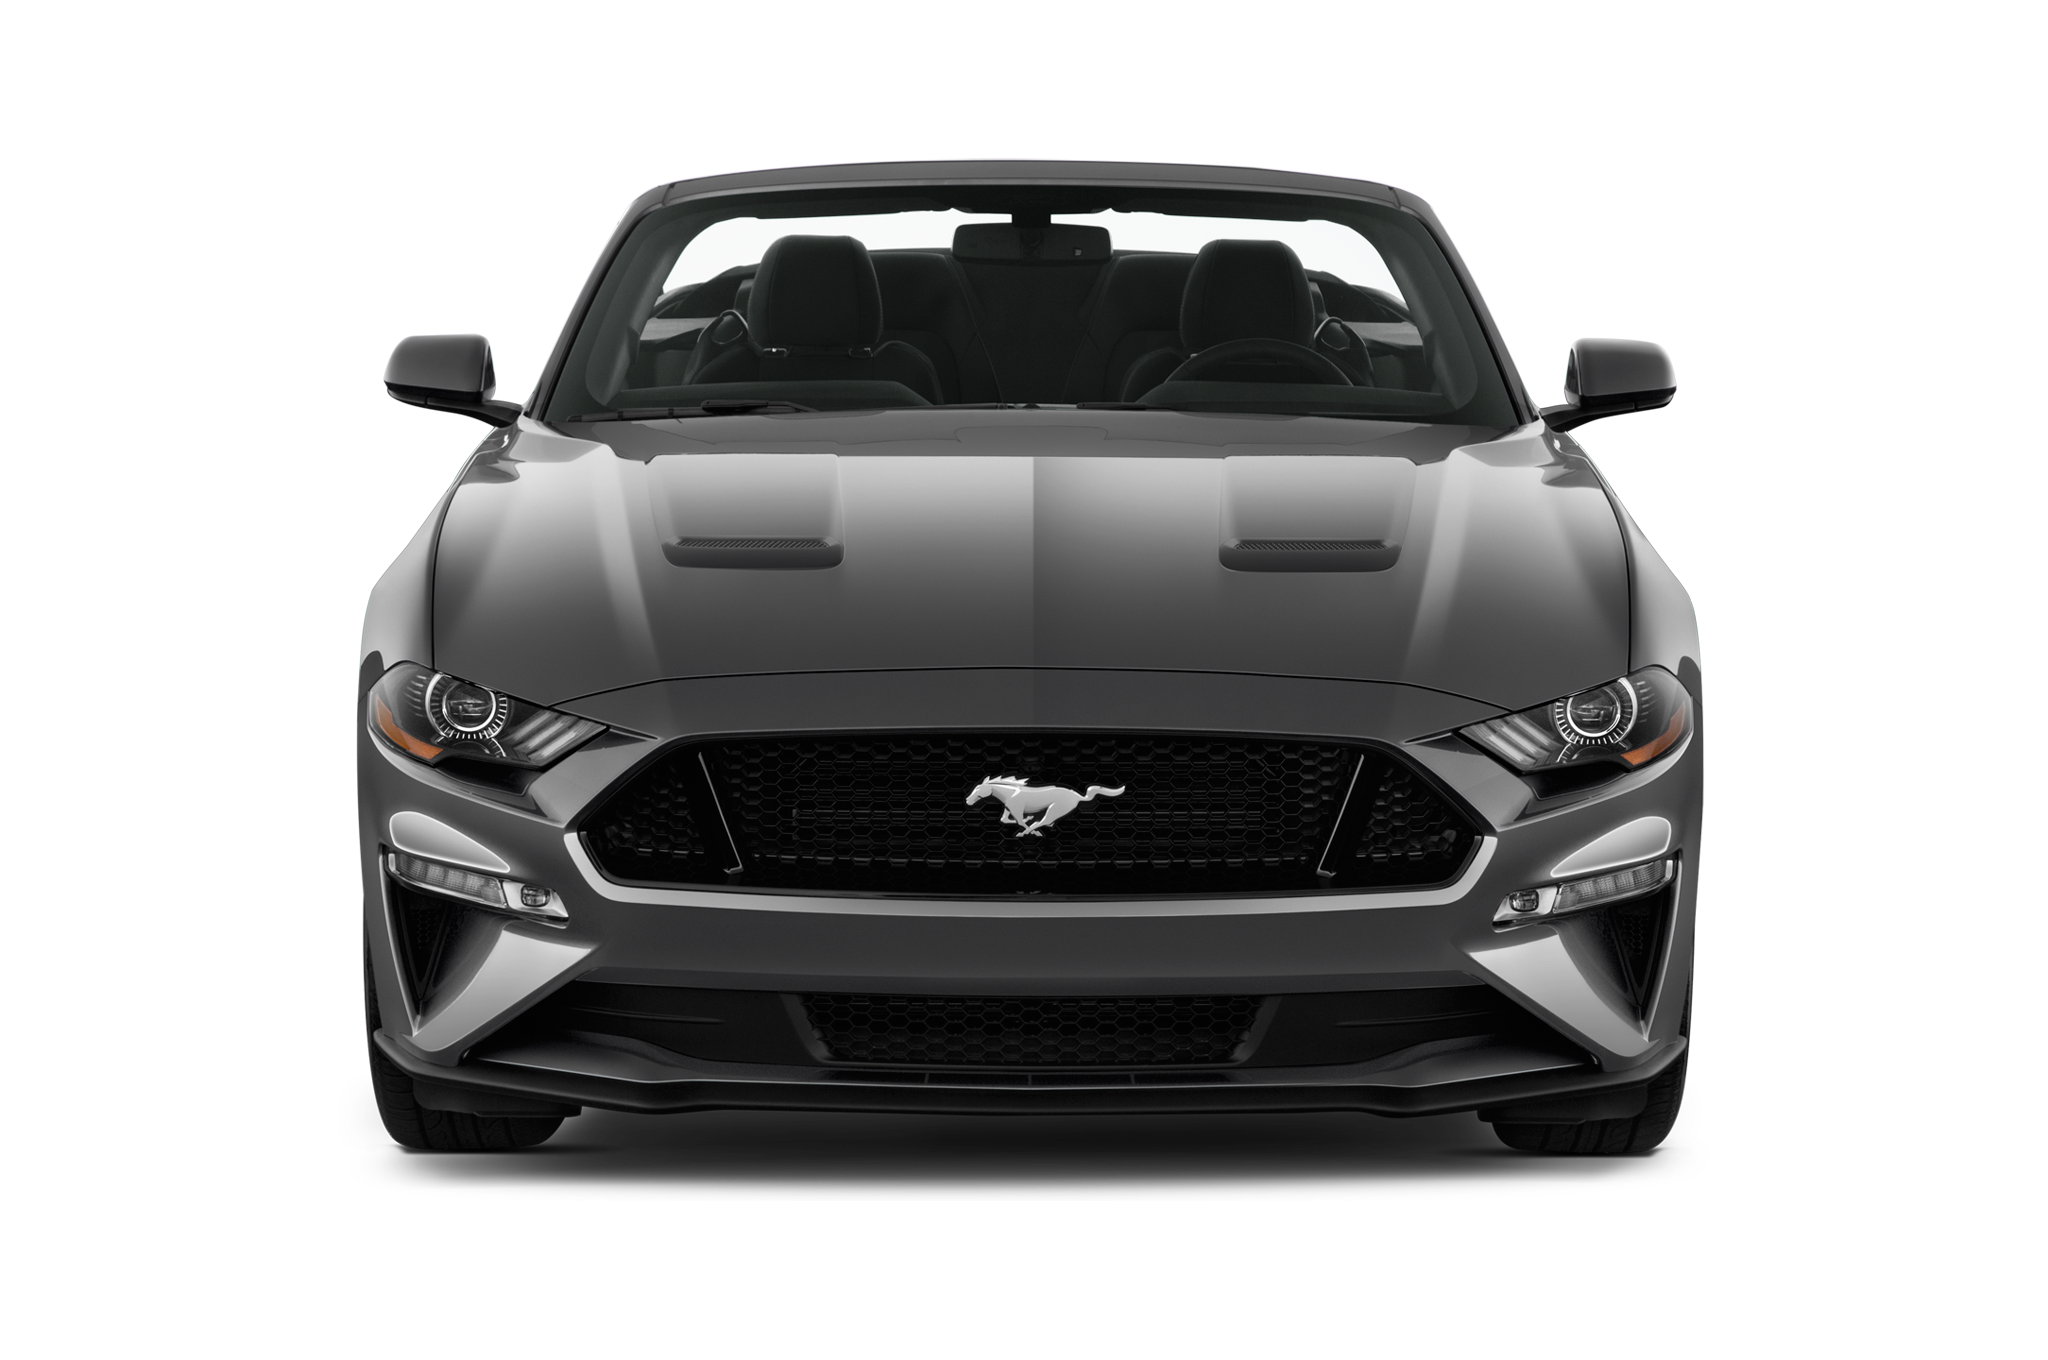 2018 Ford Mustang Gt Performance Pack Level 2 Quick Drive 2006 The Head Light Switch Also Left Front Headlight 37 111